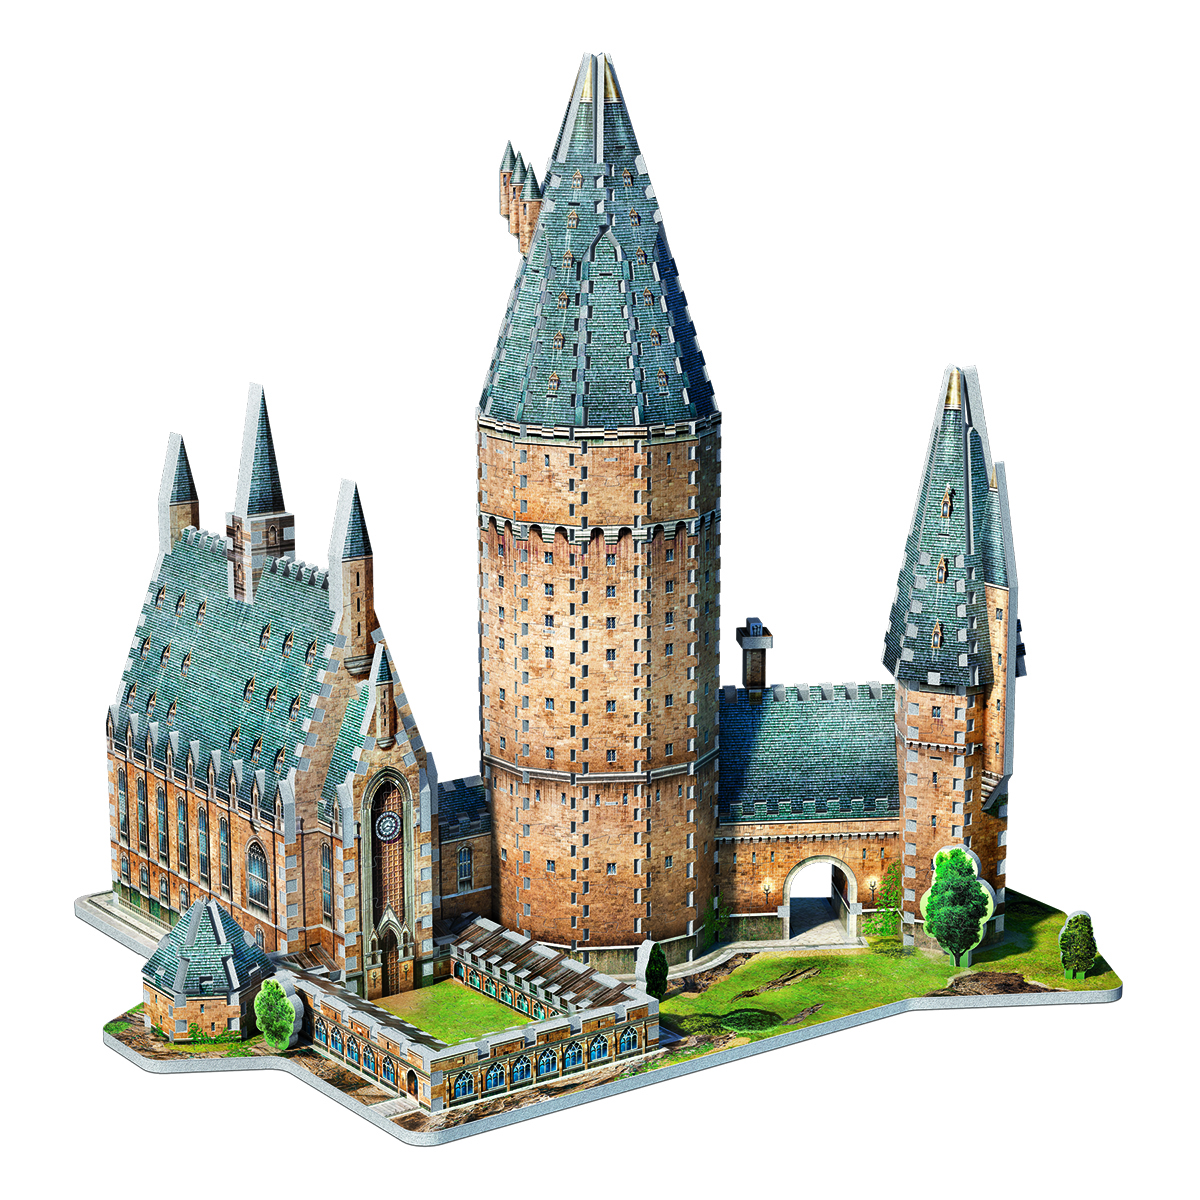 Hogwarts Great Hall Movies / Books / TV Jigsaw Puzzle